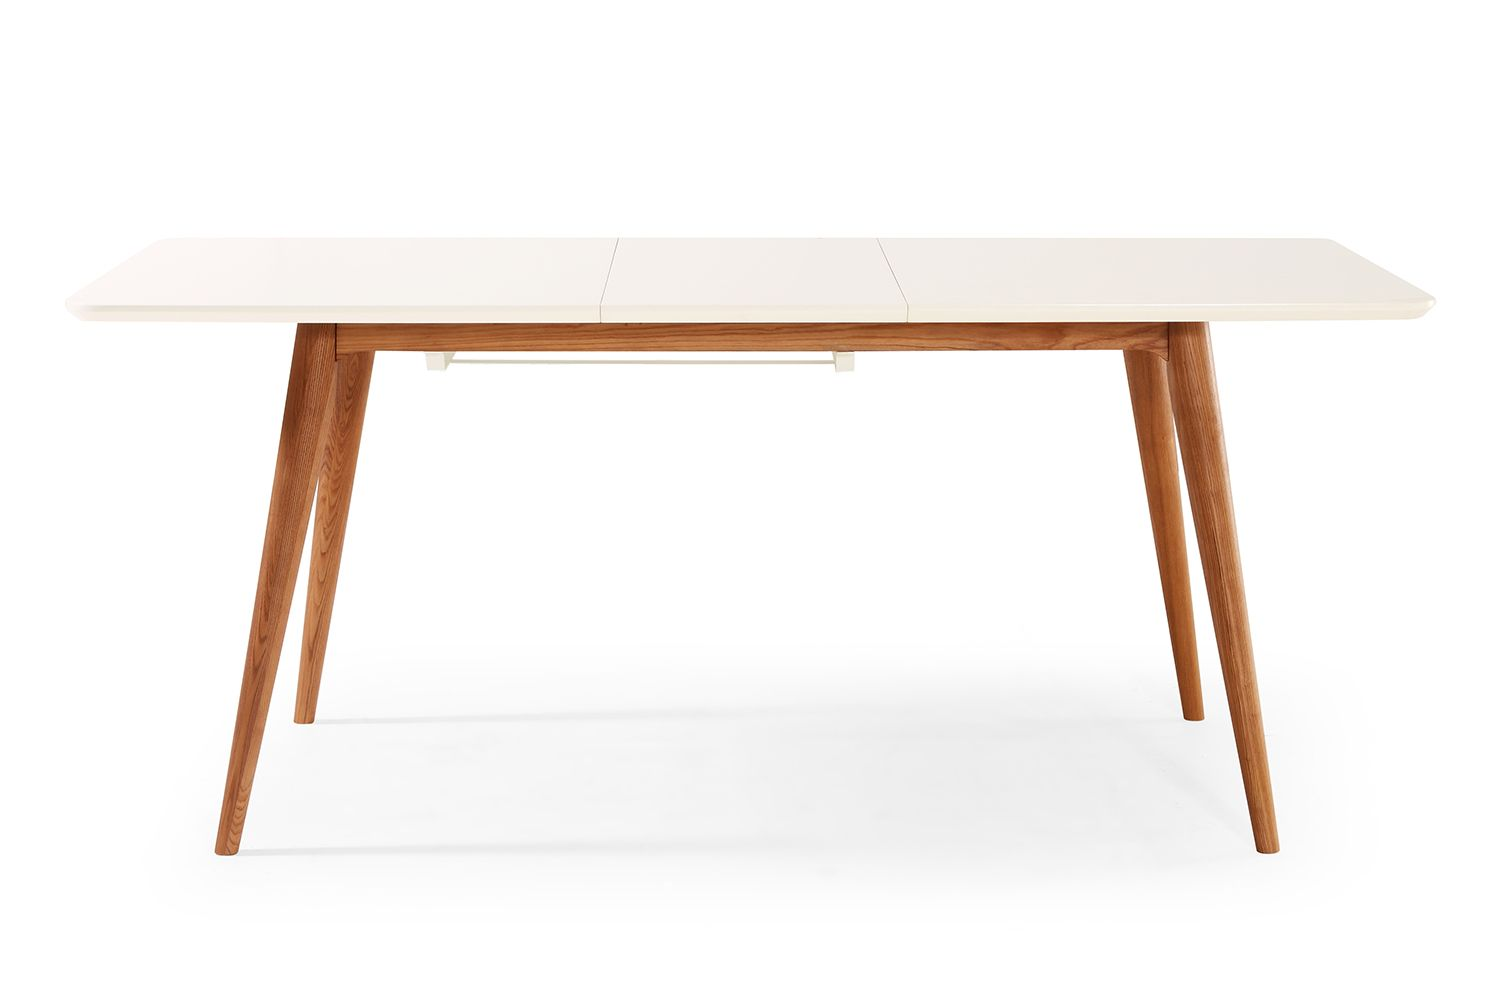 Table De Salle A Manger Extensible Bale Wyna Dewarens Table De Salle A Manger Extensible Table Salle A Manger Table A Manger Design